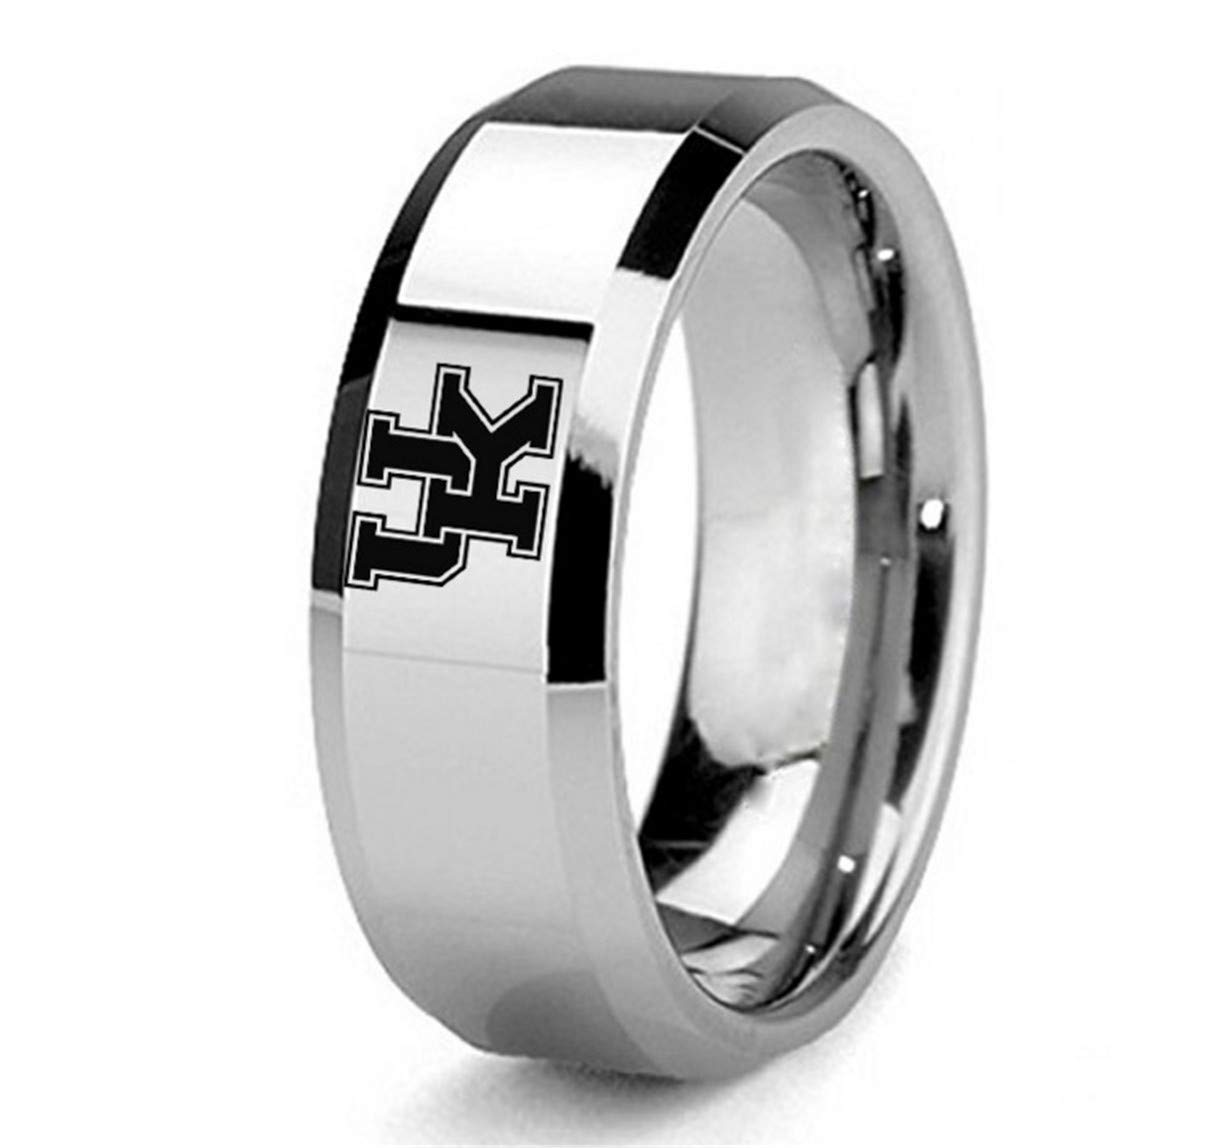 Kentucky Wildcats Titanium Steel Men's Team Ring Jewelry Silver, Size 11 by Tianorr